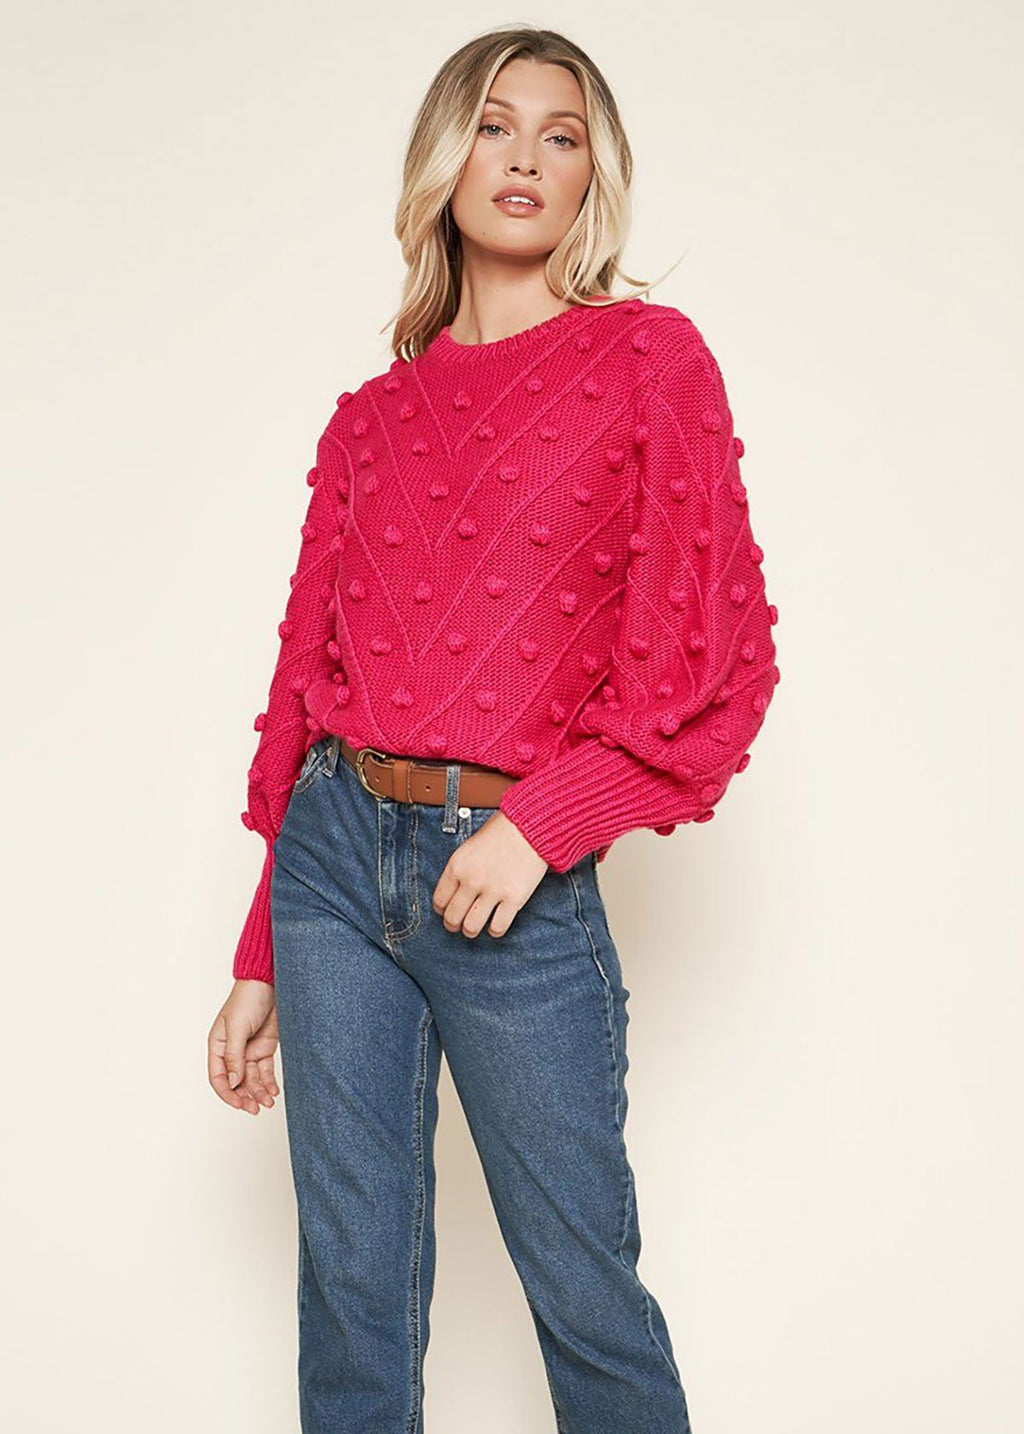 Shake Your Pom Pom Fuchsia Sweater